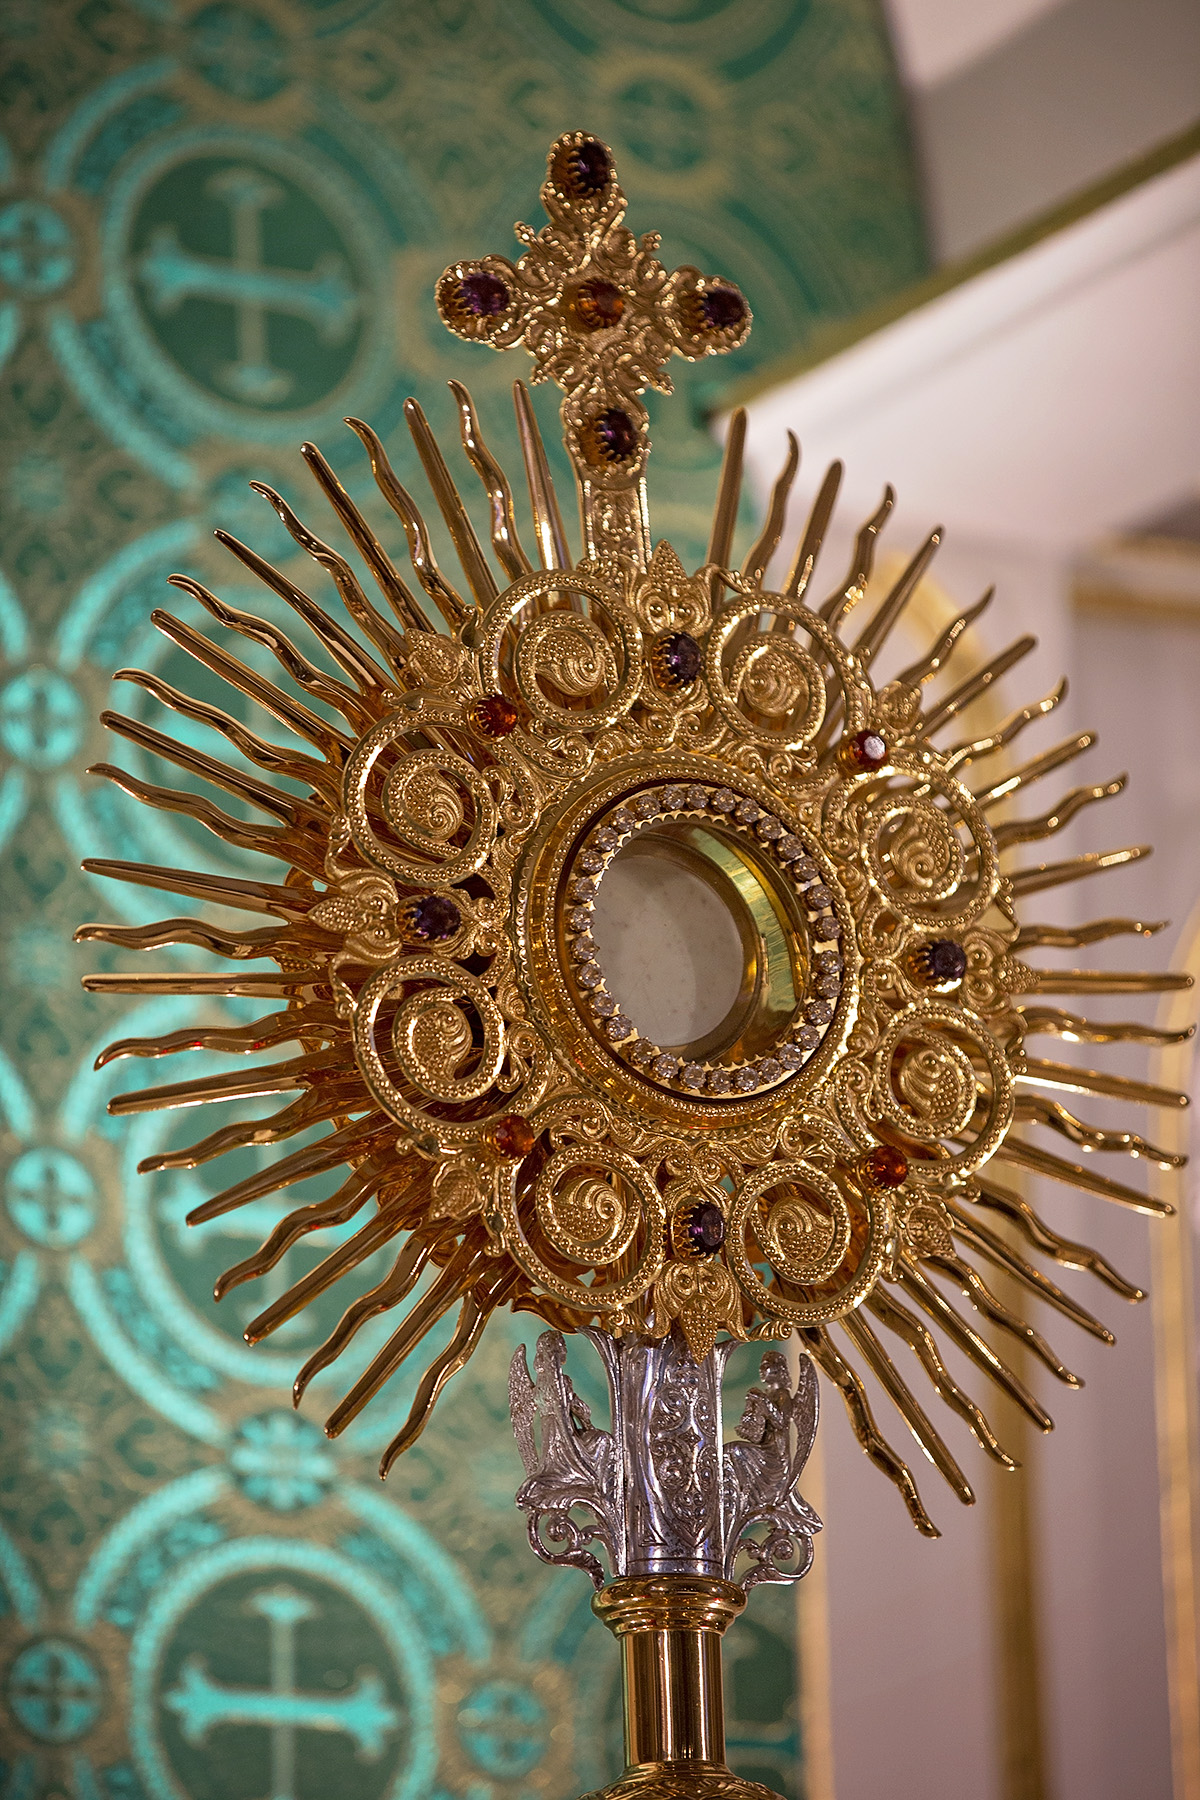 Monstrance at Incarnation of Our Lord Church. Photo courtesy of Erick Macek (www.erickmacek.com)